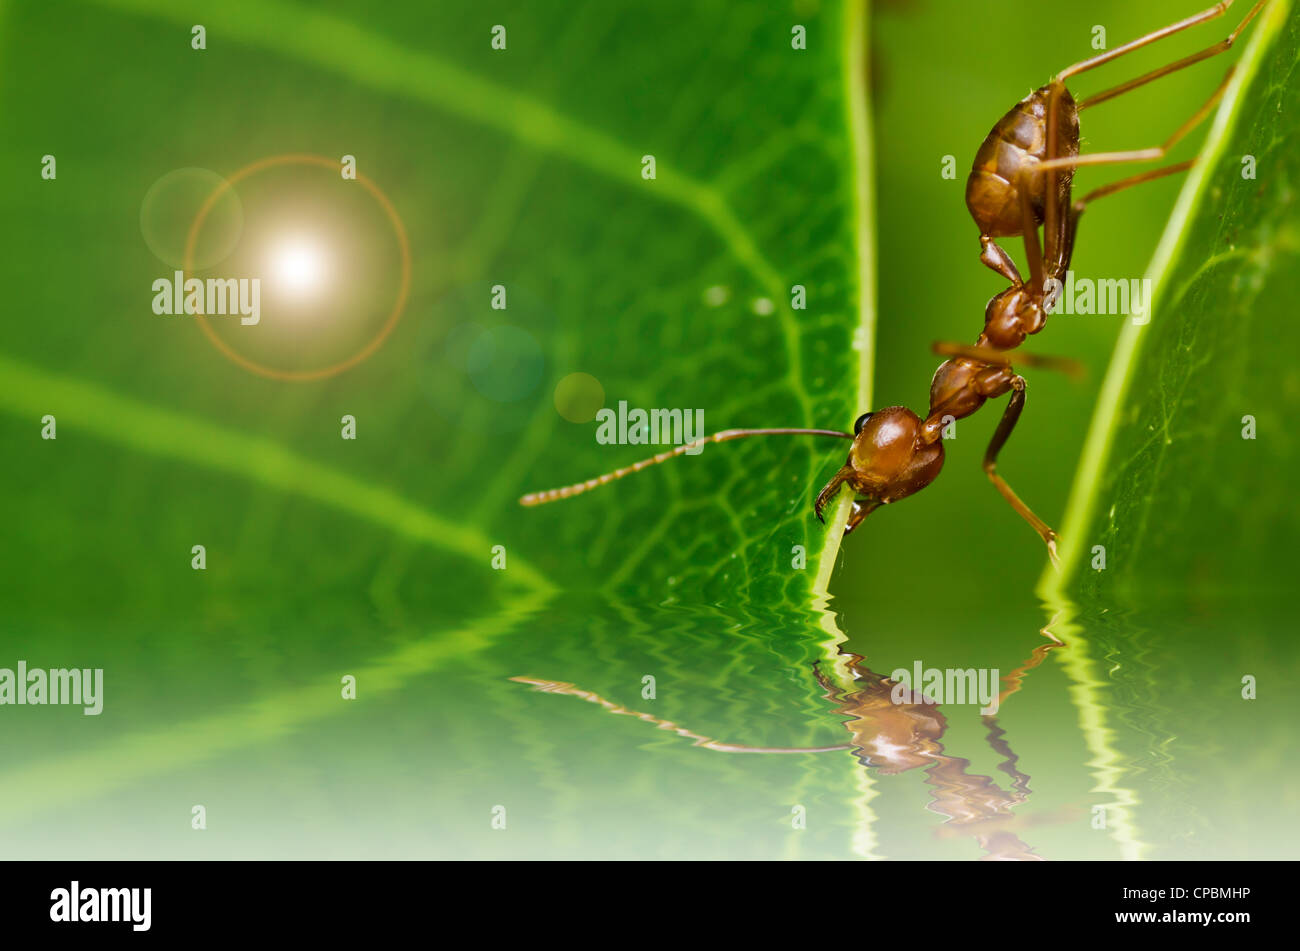 red ant powerful in green nature - Stock Image